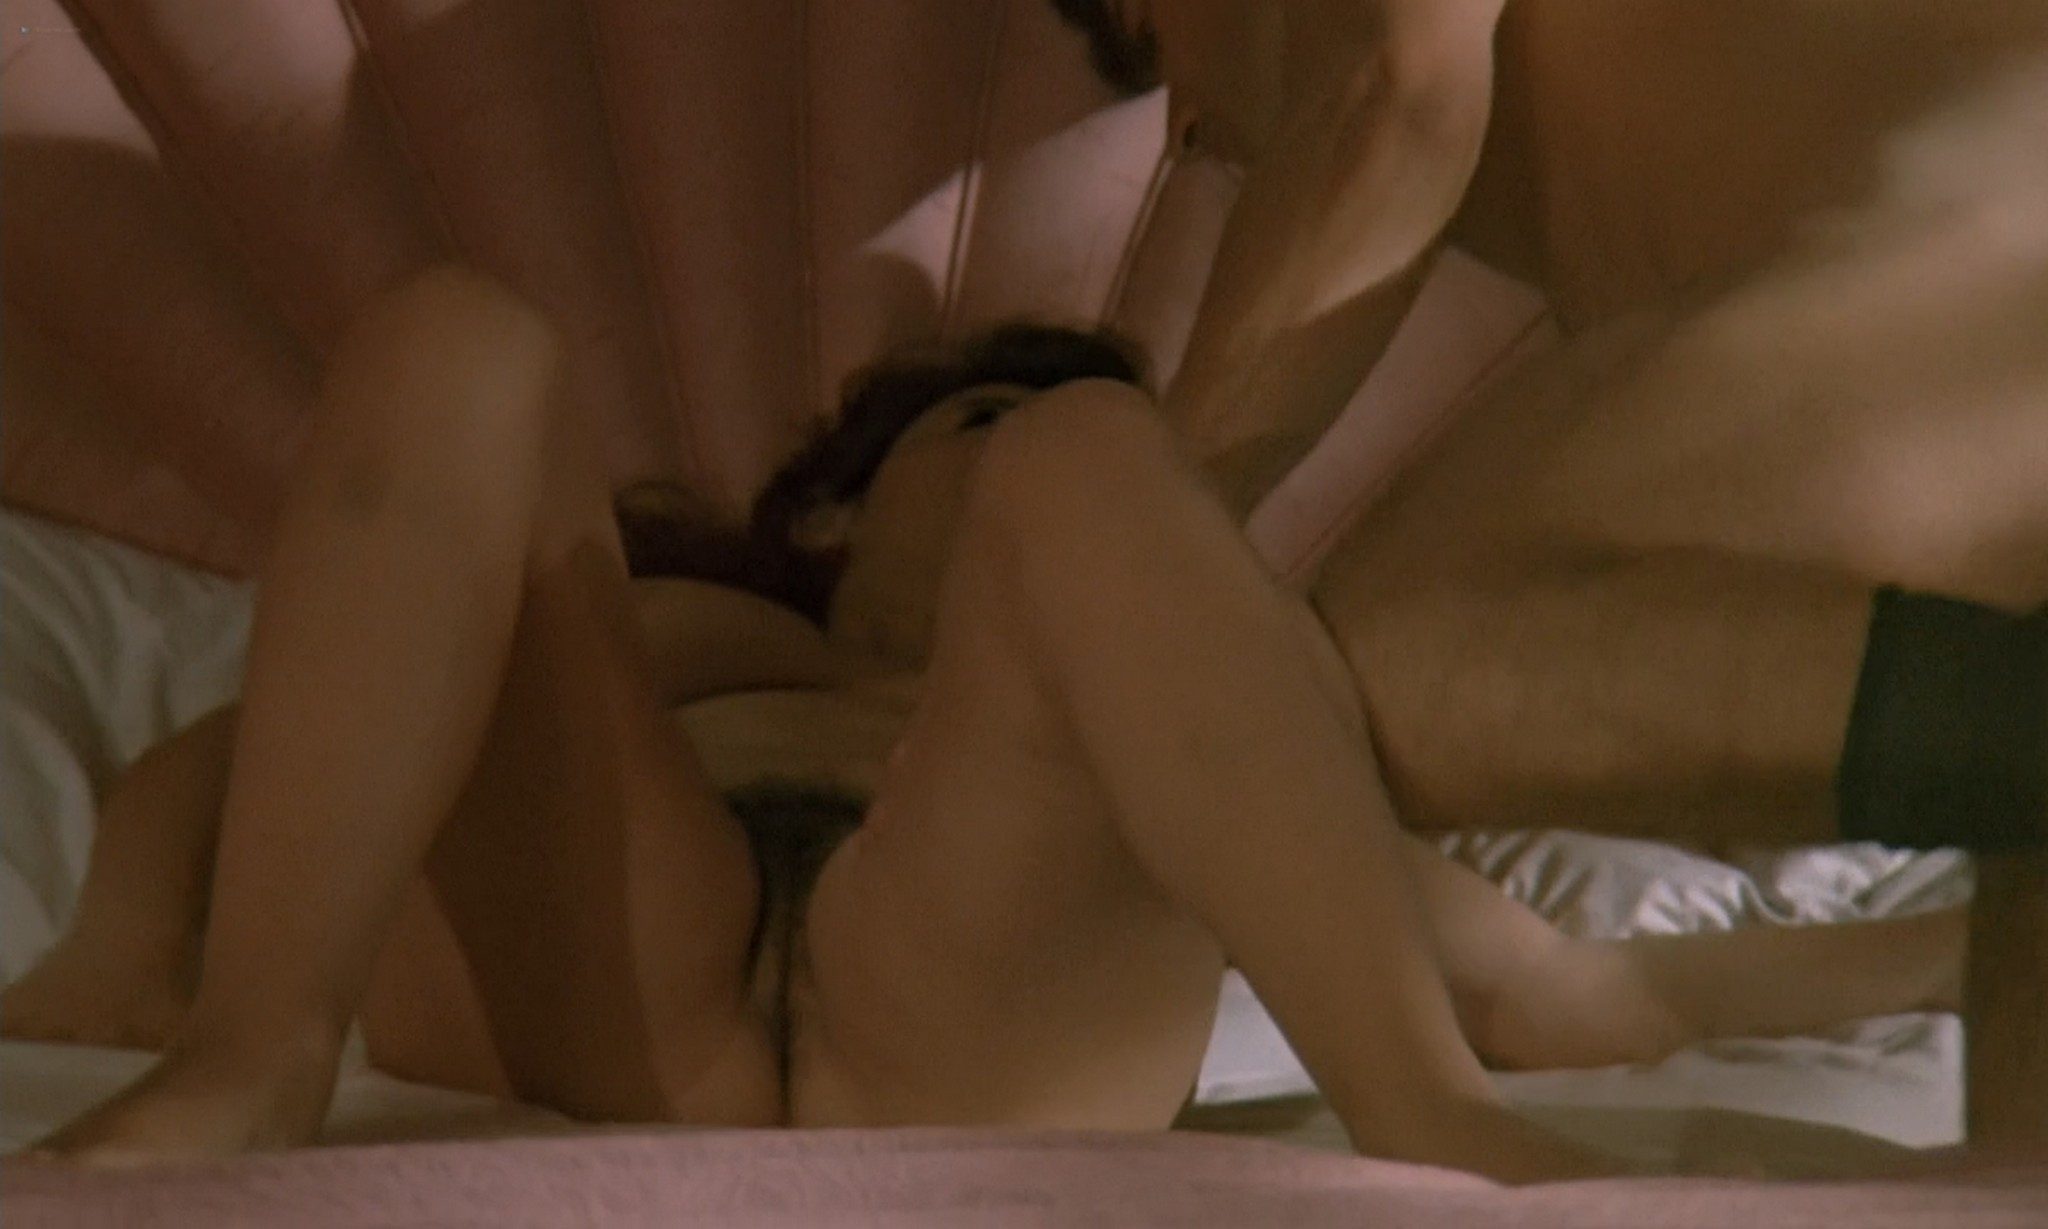 Deborah Caprioglio and others nude full frontal pussy and explicit Paprika IT 1991 720p BluRay 5